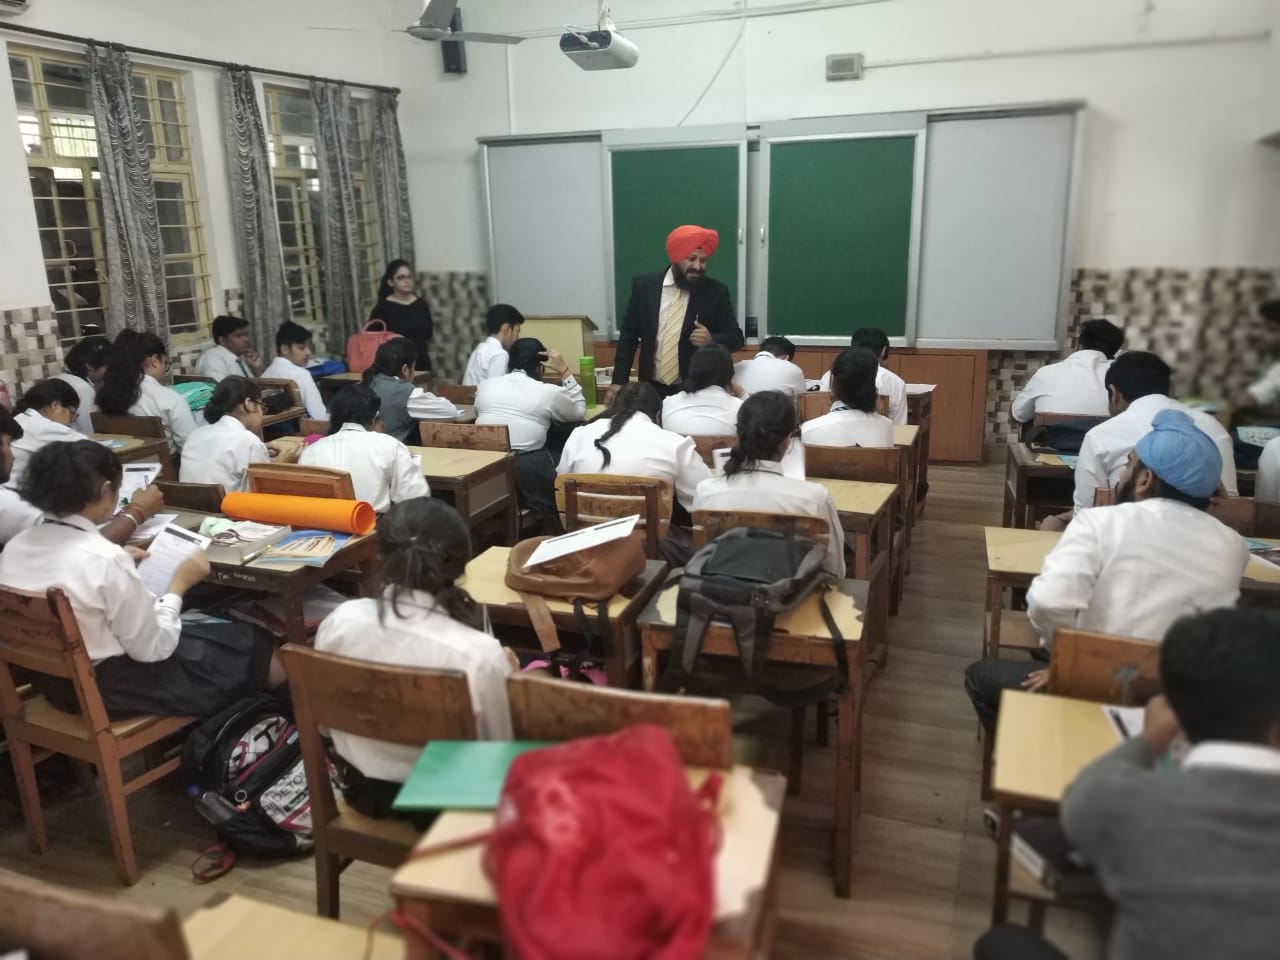 //www.careerlauncher.comOne of the interactive sessions on Law and IPM as career options for students of class 11 at APJ, Jalandhar